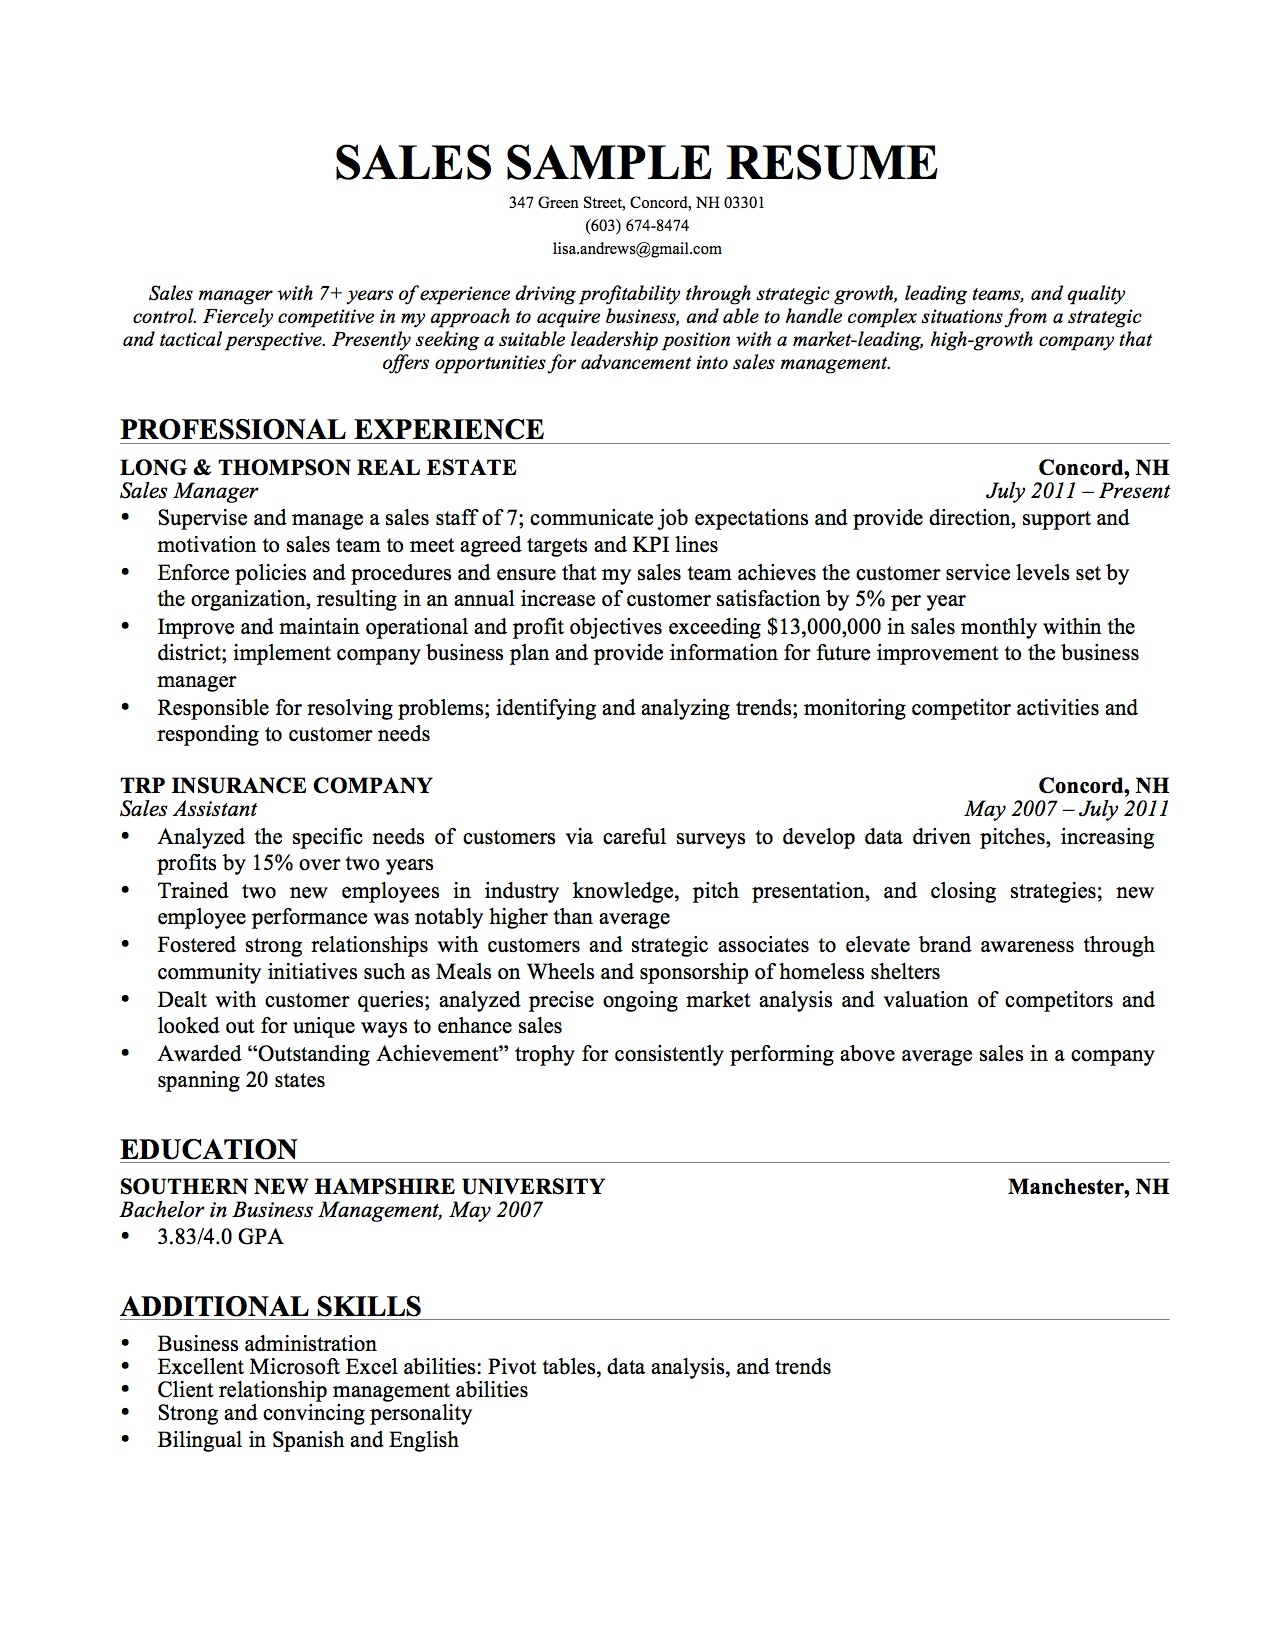 resume under skills resume skills list of skills for resume sample resume the 10 commandments of